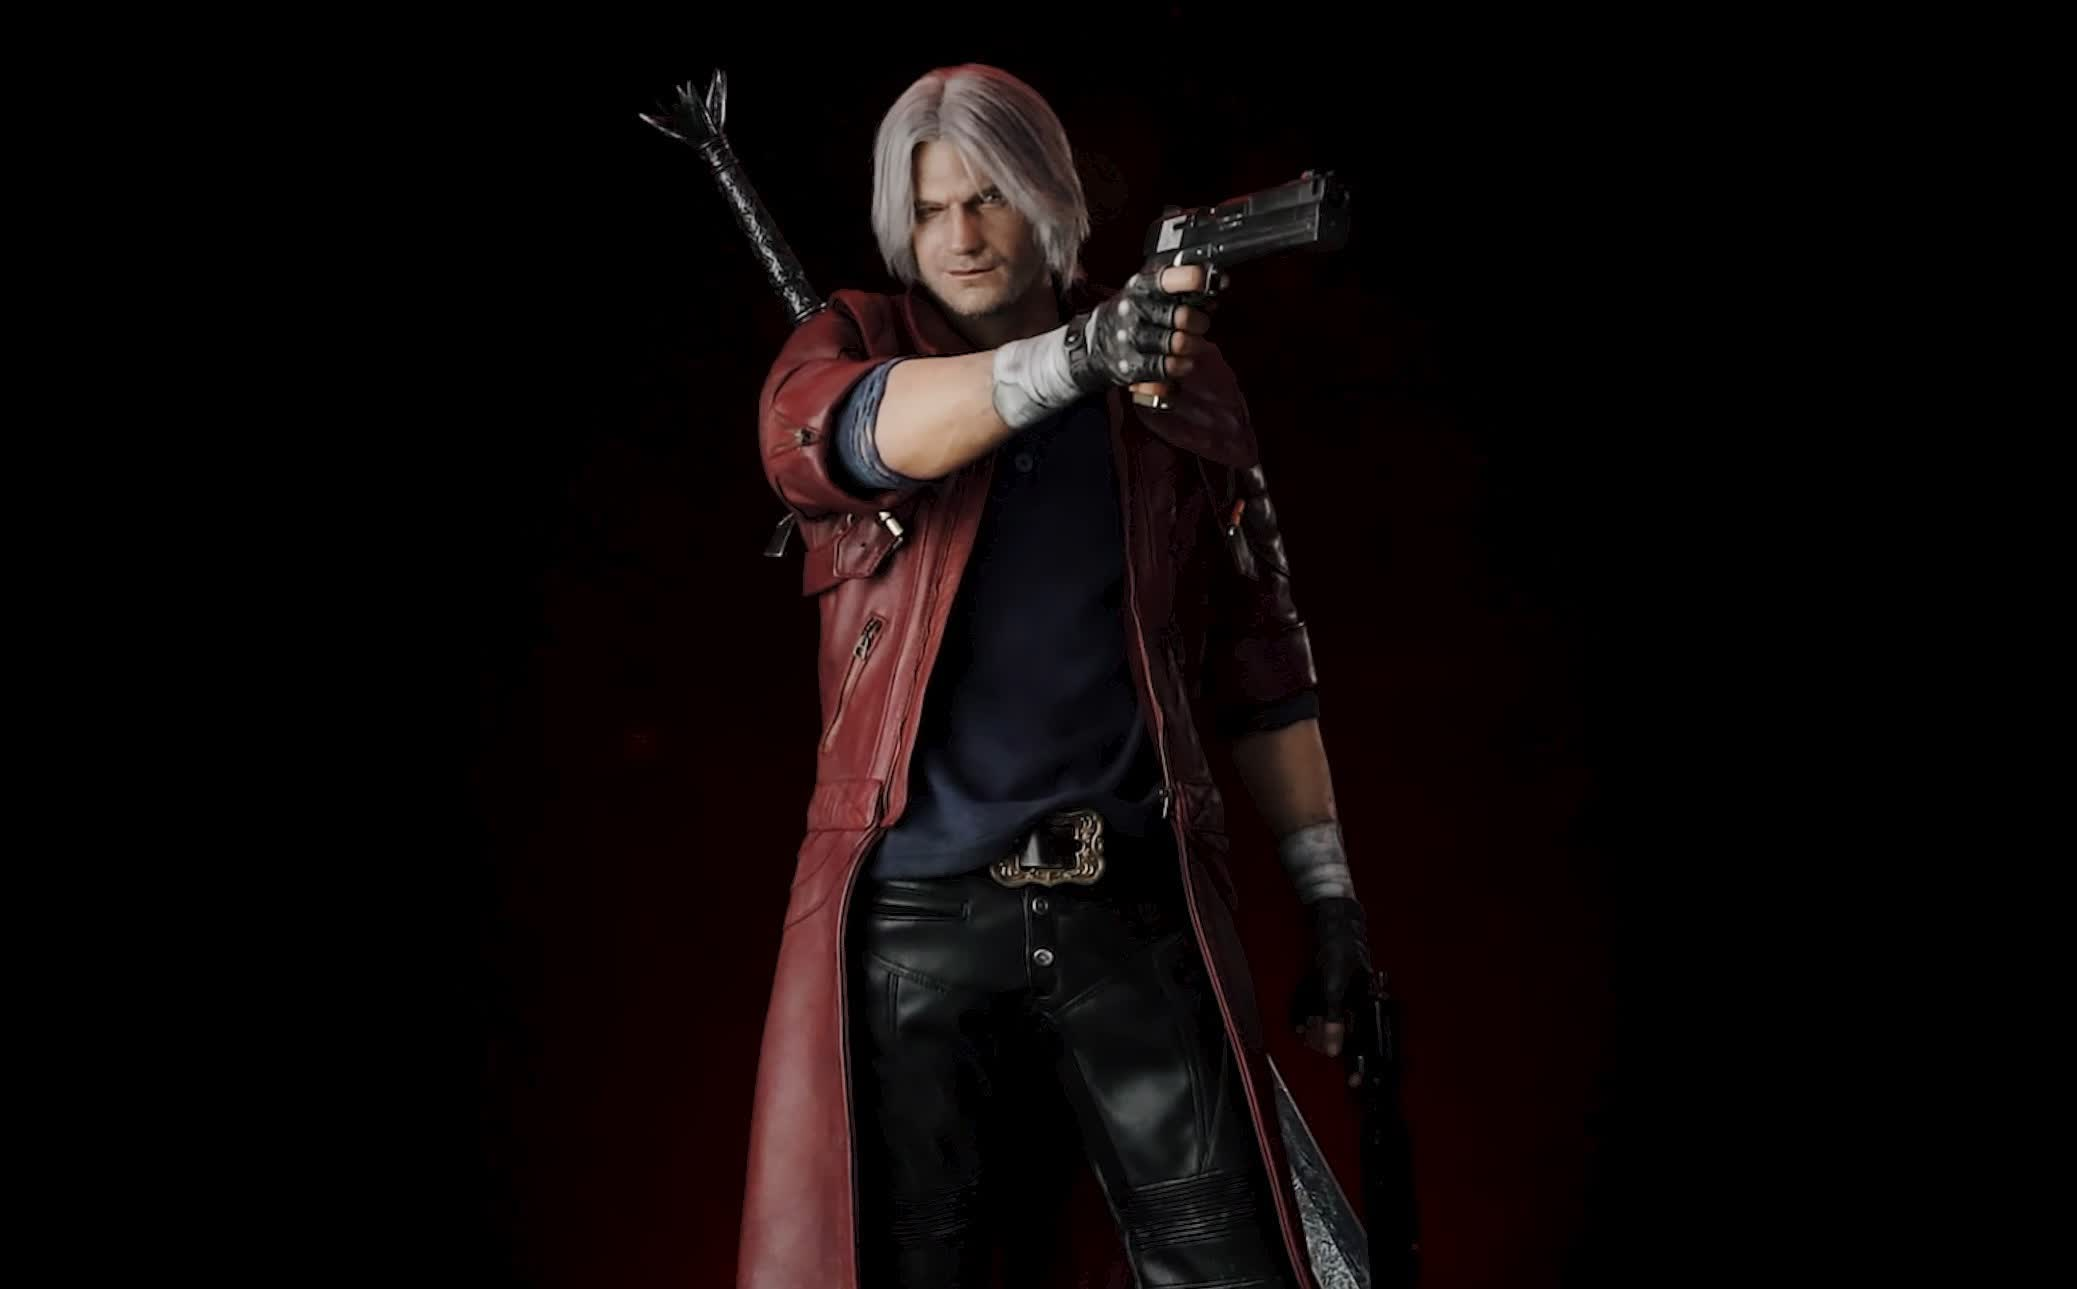 Got a spare $4,300? You could buy this 43-inch statue of Devil May Cry 5's Dante